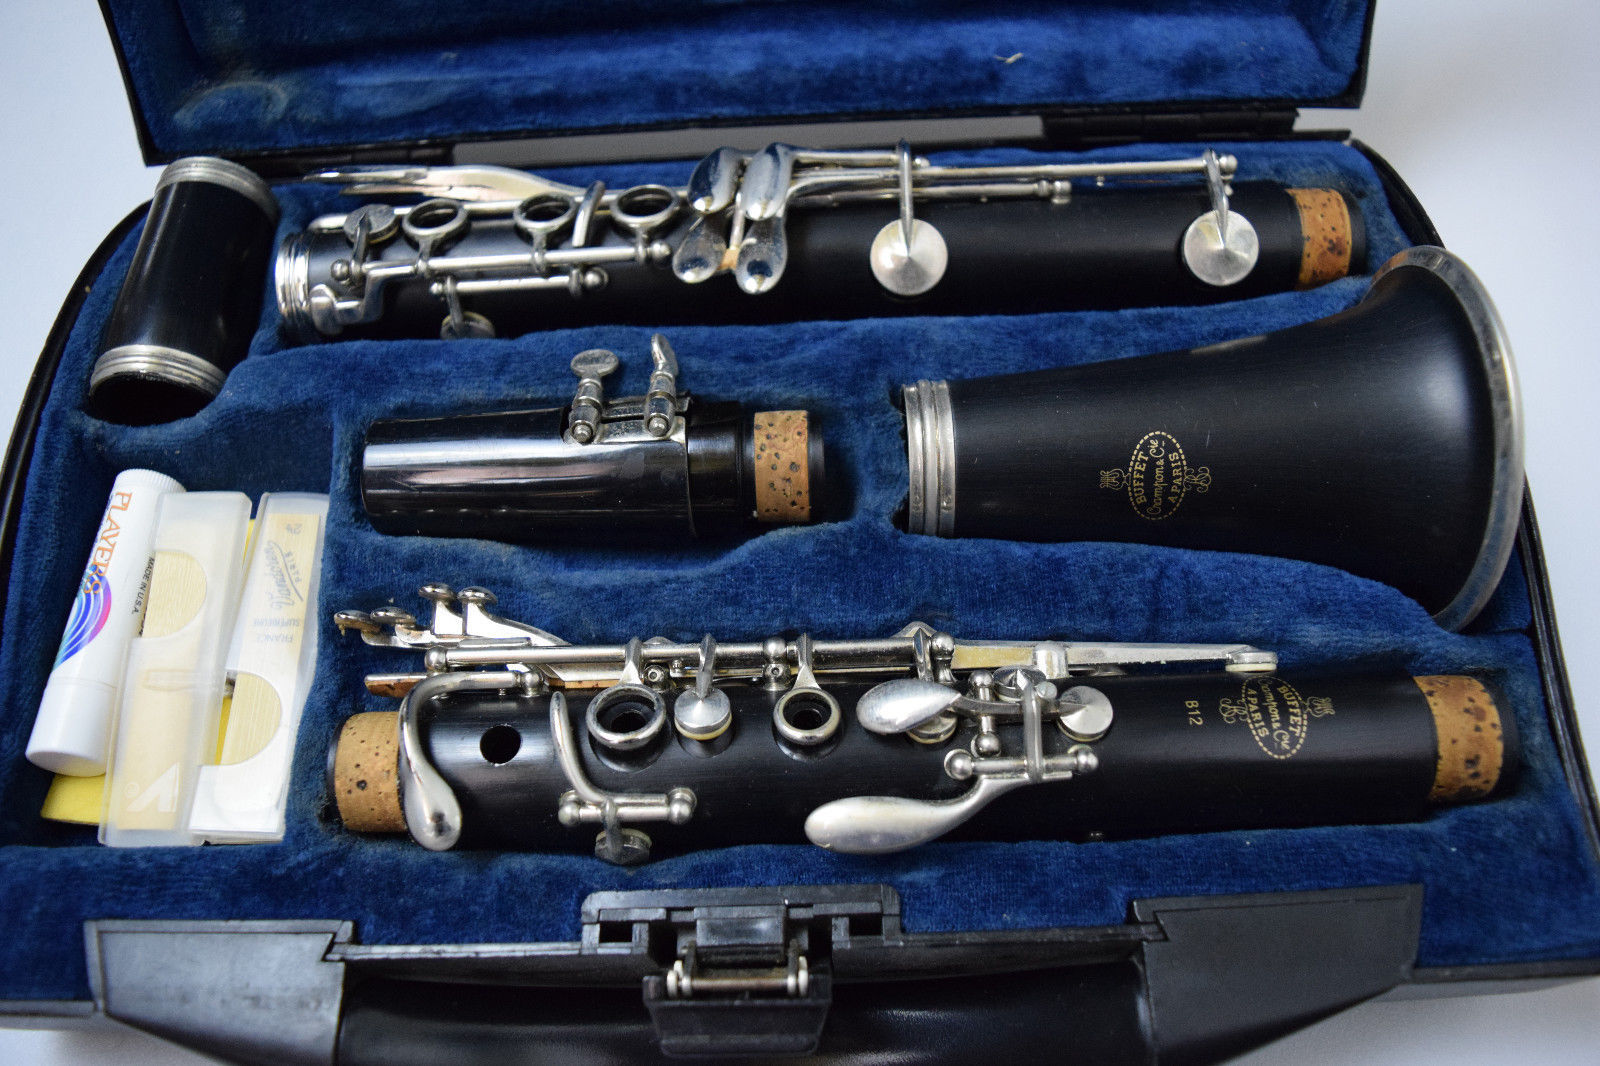 BUFFET CRAMPTON & CIE A Paris B12 Student Clarinet w/Case and Accessories